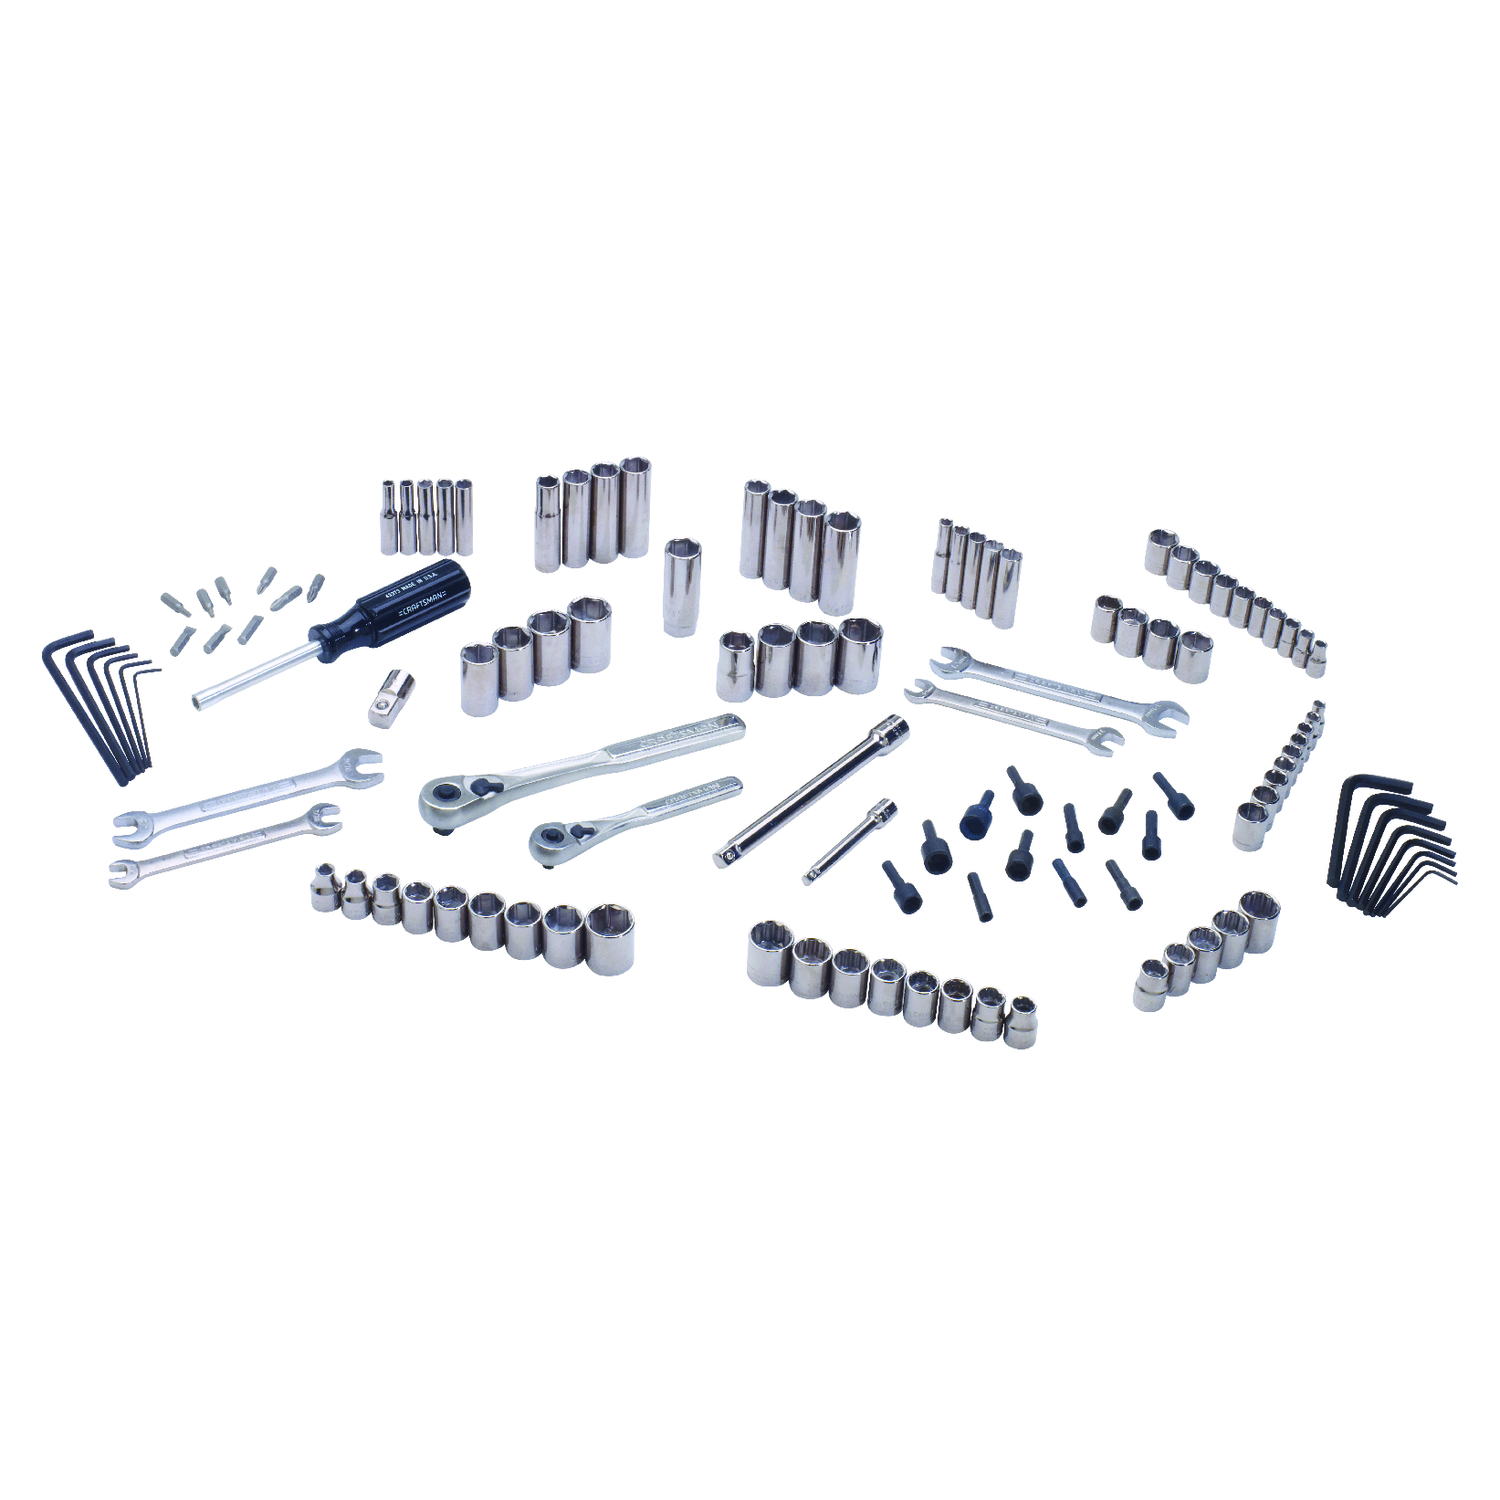 Craftsman  1/4 in.  x 3/8 in. drive  Metric  6 Point Mechanic�s Tool Set  117 pc.